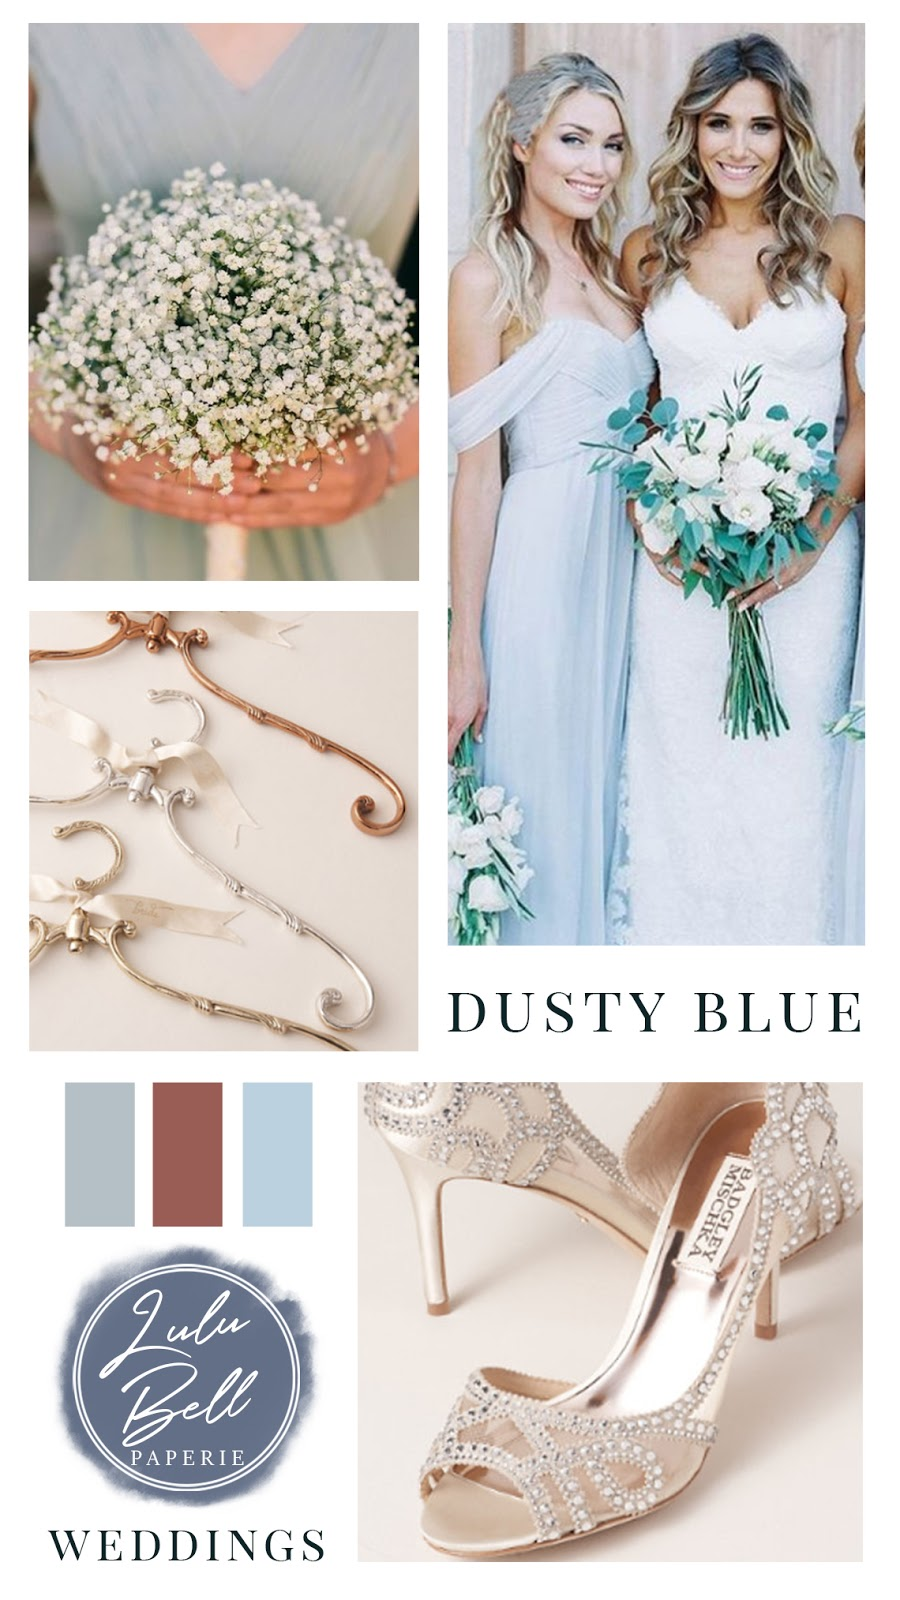 Dusty Blue Cinnamon and Navy Wedding Color Palette Inspiration - Bridesmaid Bouquets, Bridesmaid Dresses, Gown Hangers, and Beaded Bridal Shoes